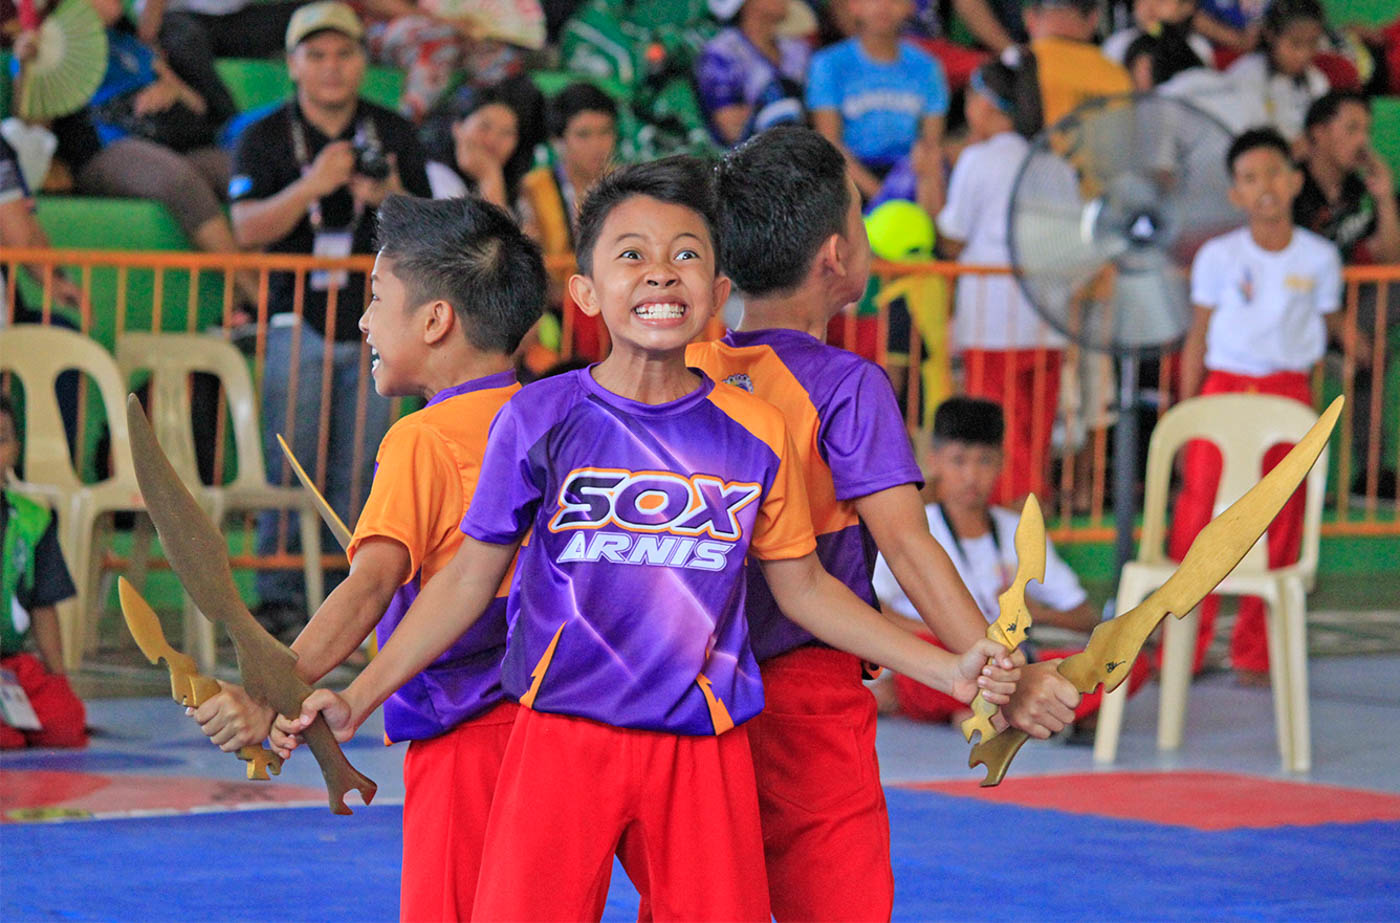 Elementary grade school Andrei Fritz Justine Alcarioto of region XII grab 2 golds medals in boys division of Arnis Sports at the 2018 palarong pambansa 2018. Photo by Mau Victa/Rappler